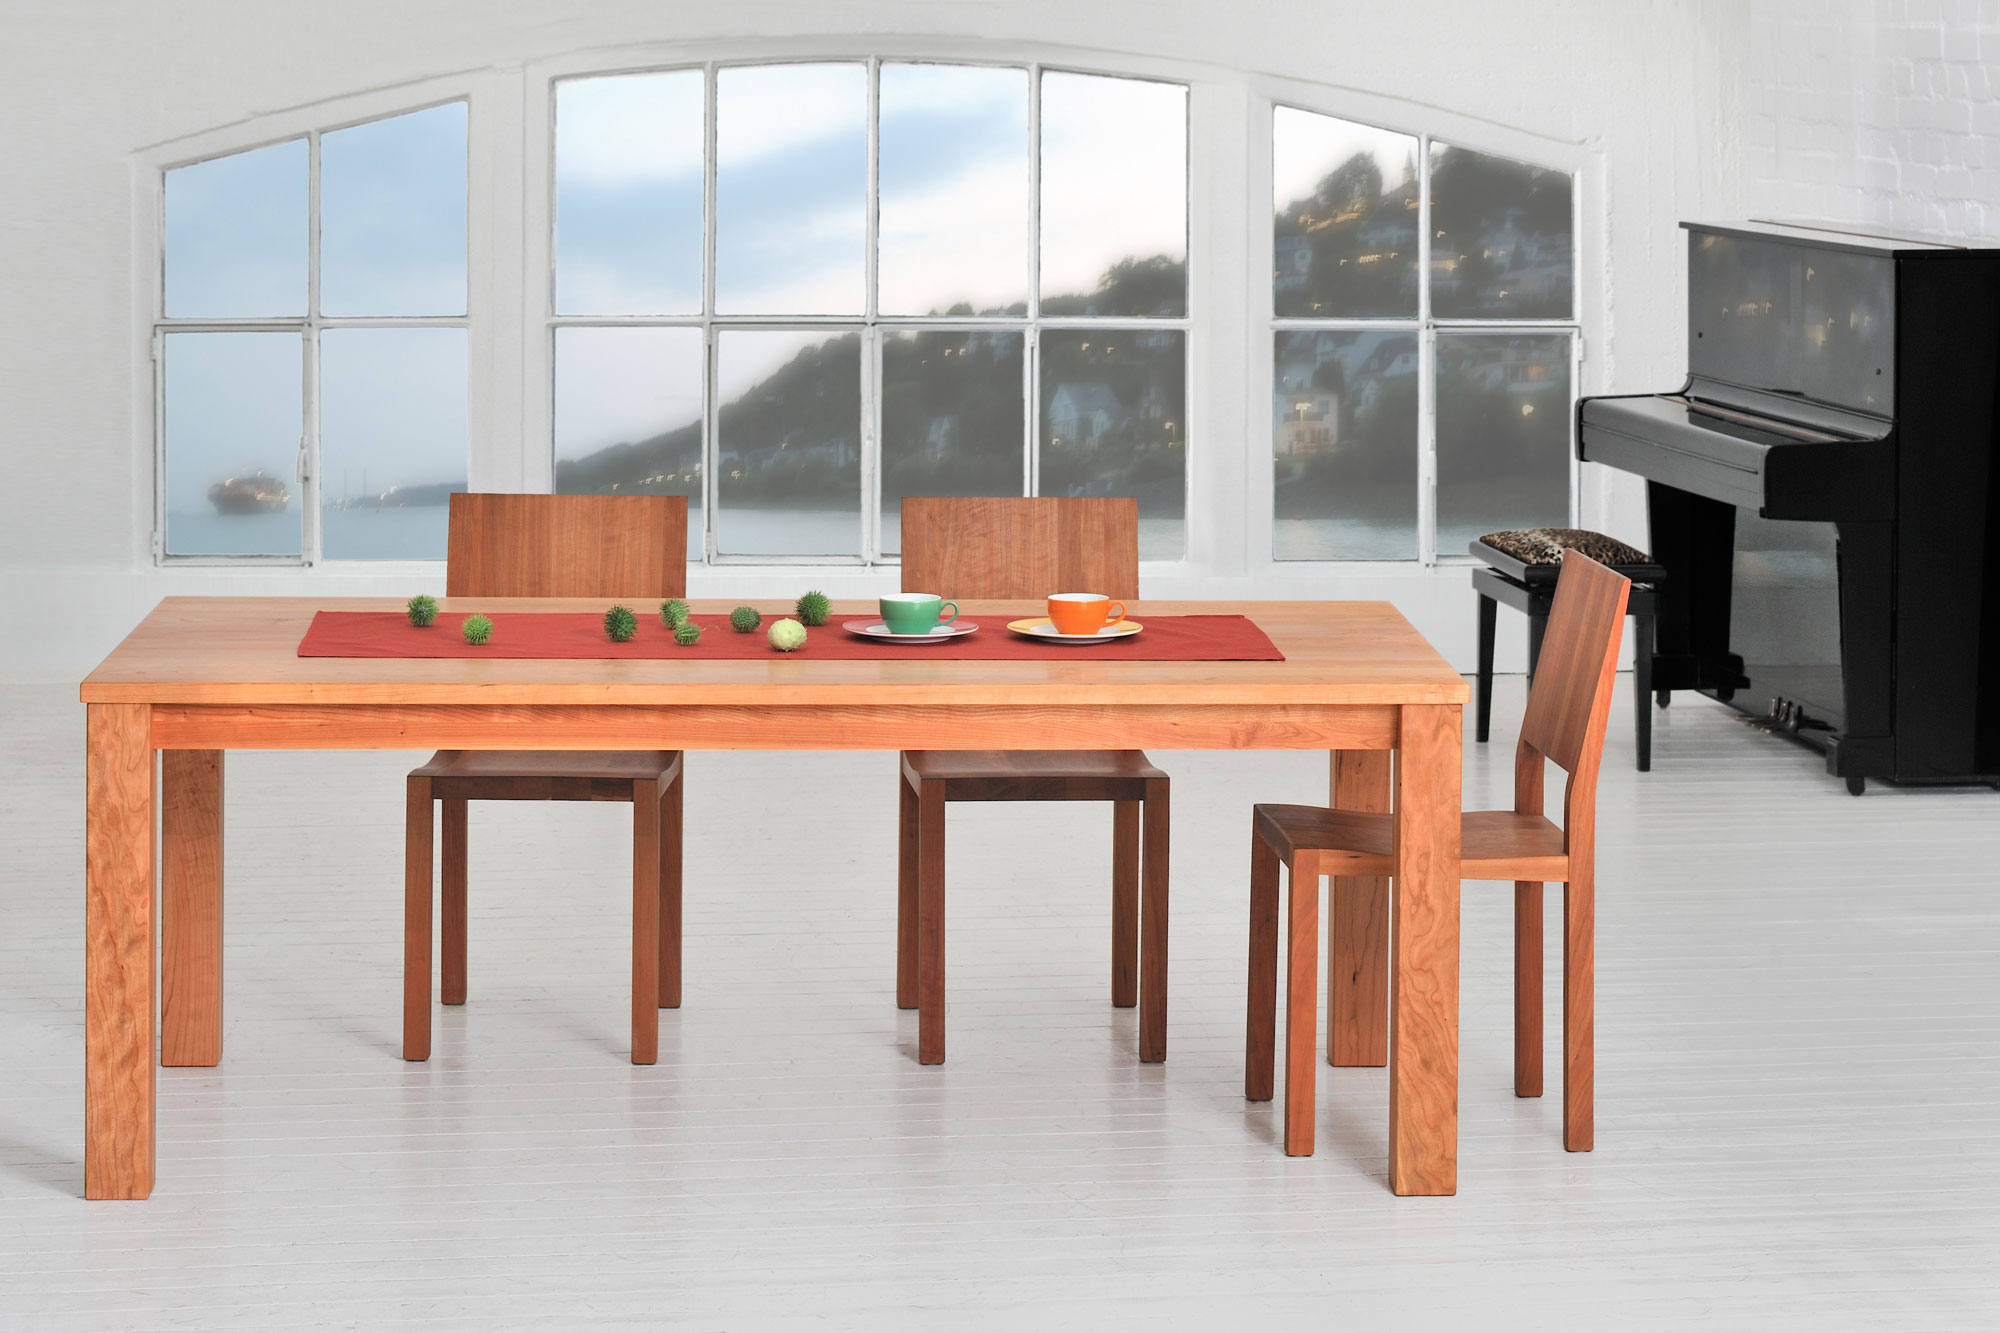 Tailor-Made Wood Table FORTE 3 B9X9 2001 custom made in solid wood by vitamin design